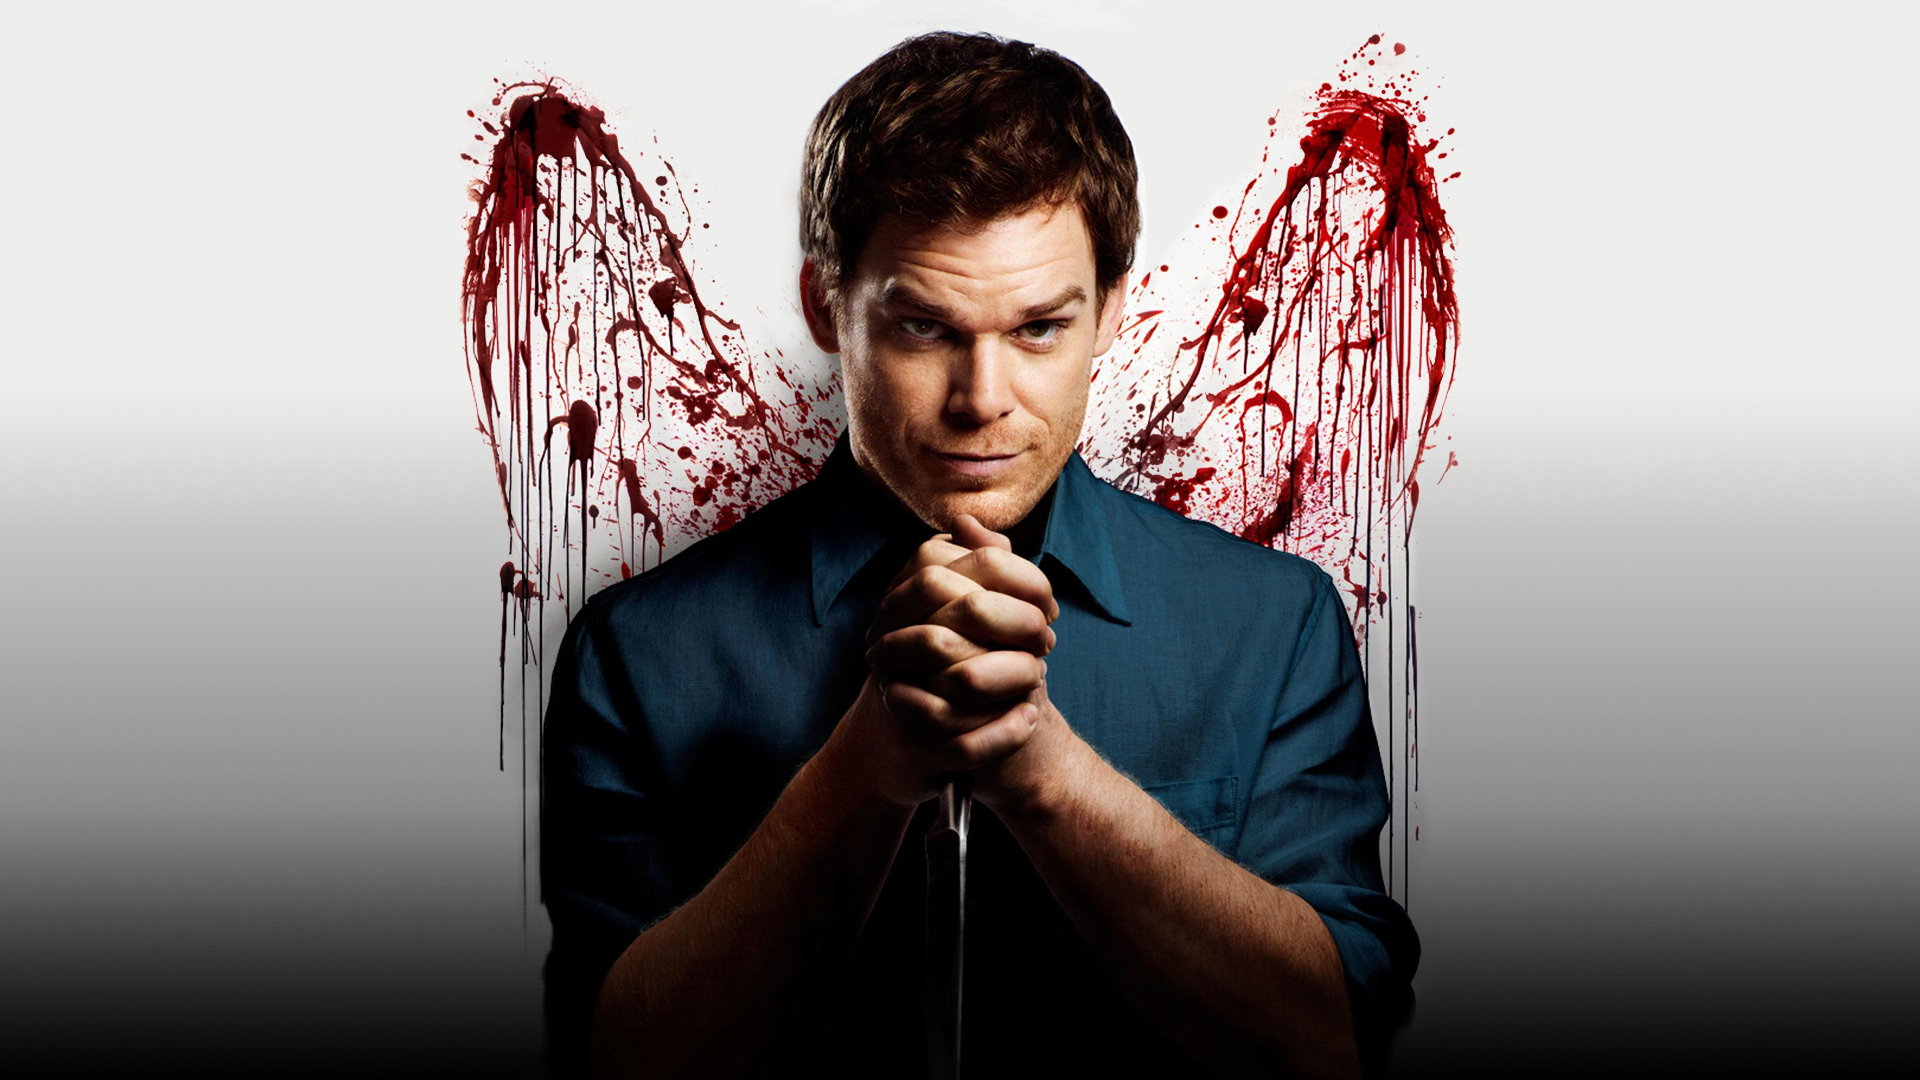 Dexter Computer Wallpapers Desktop Backgrounds 1366x768